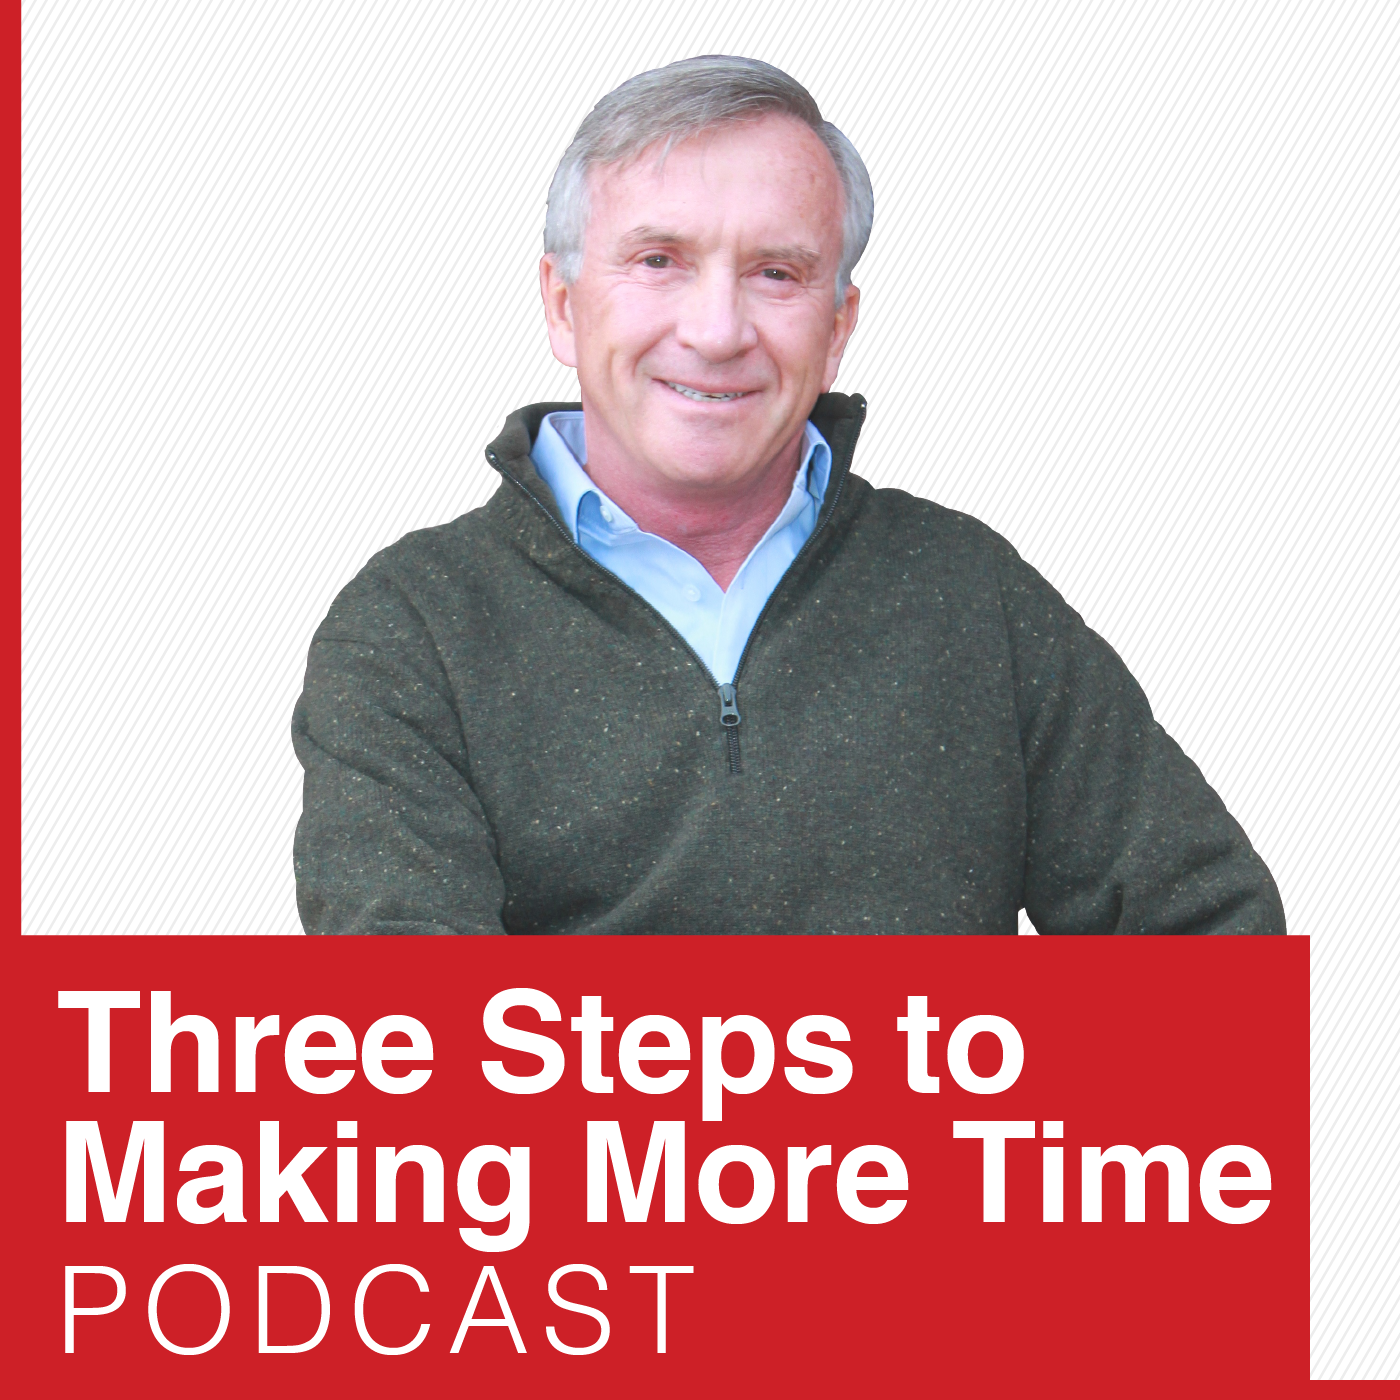 Three steps to making more time